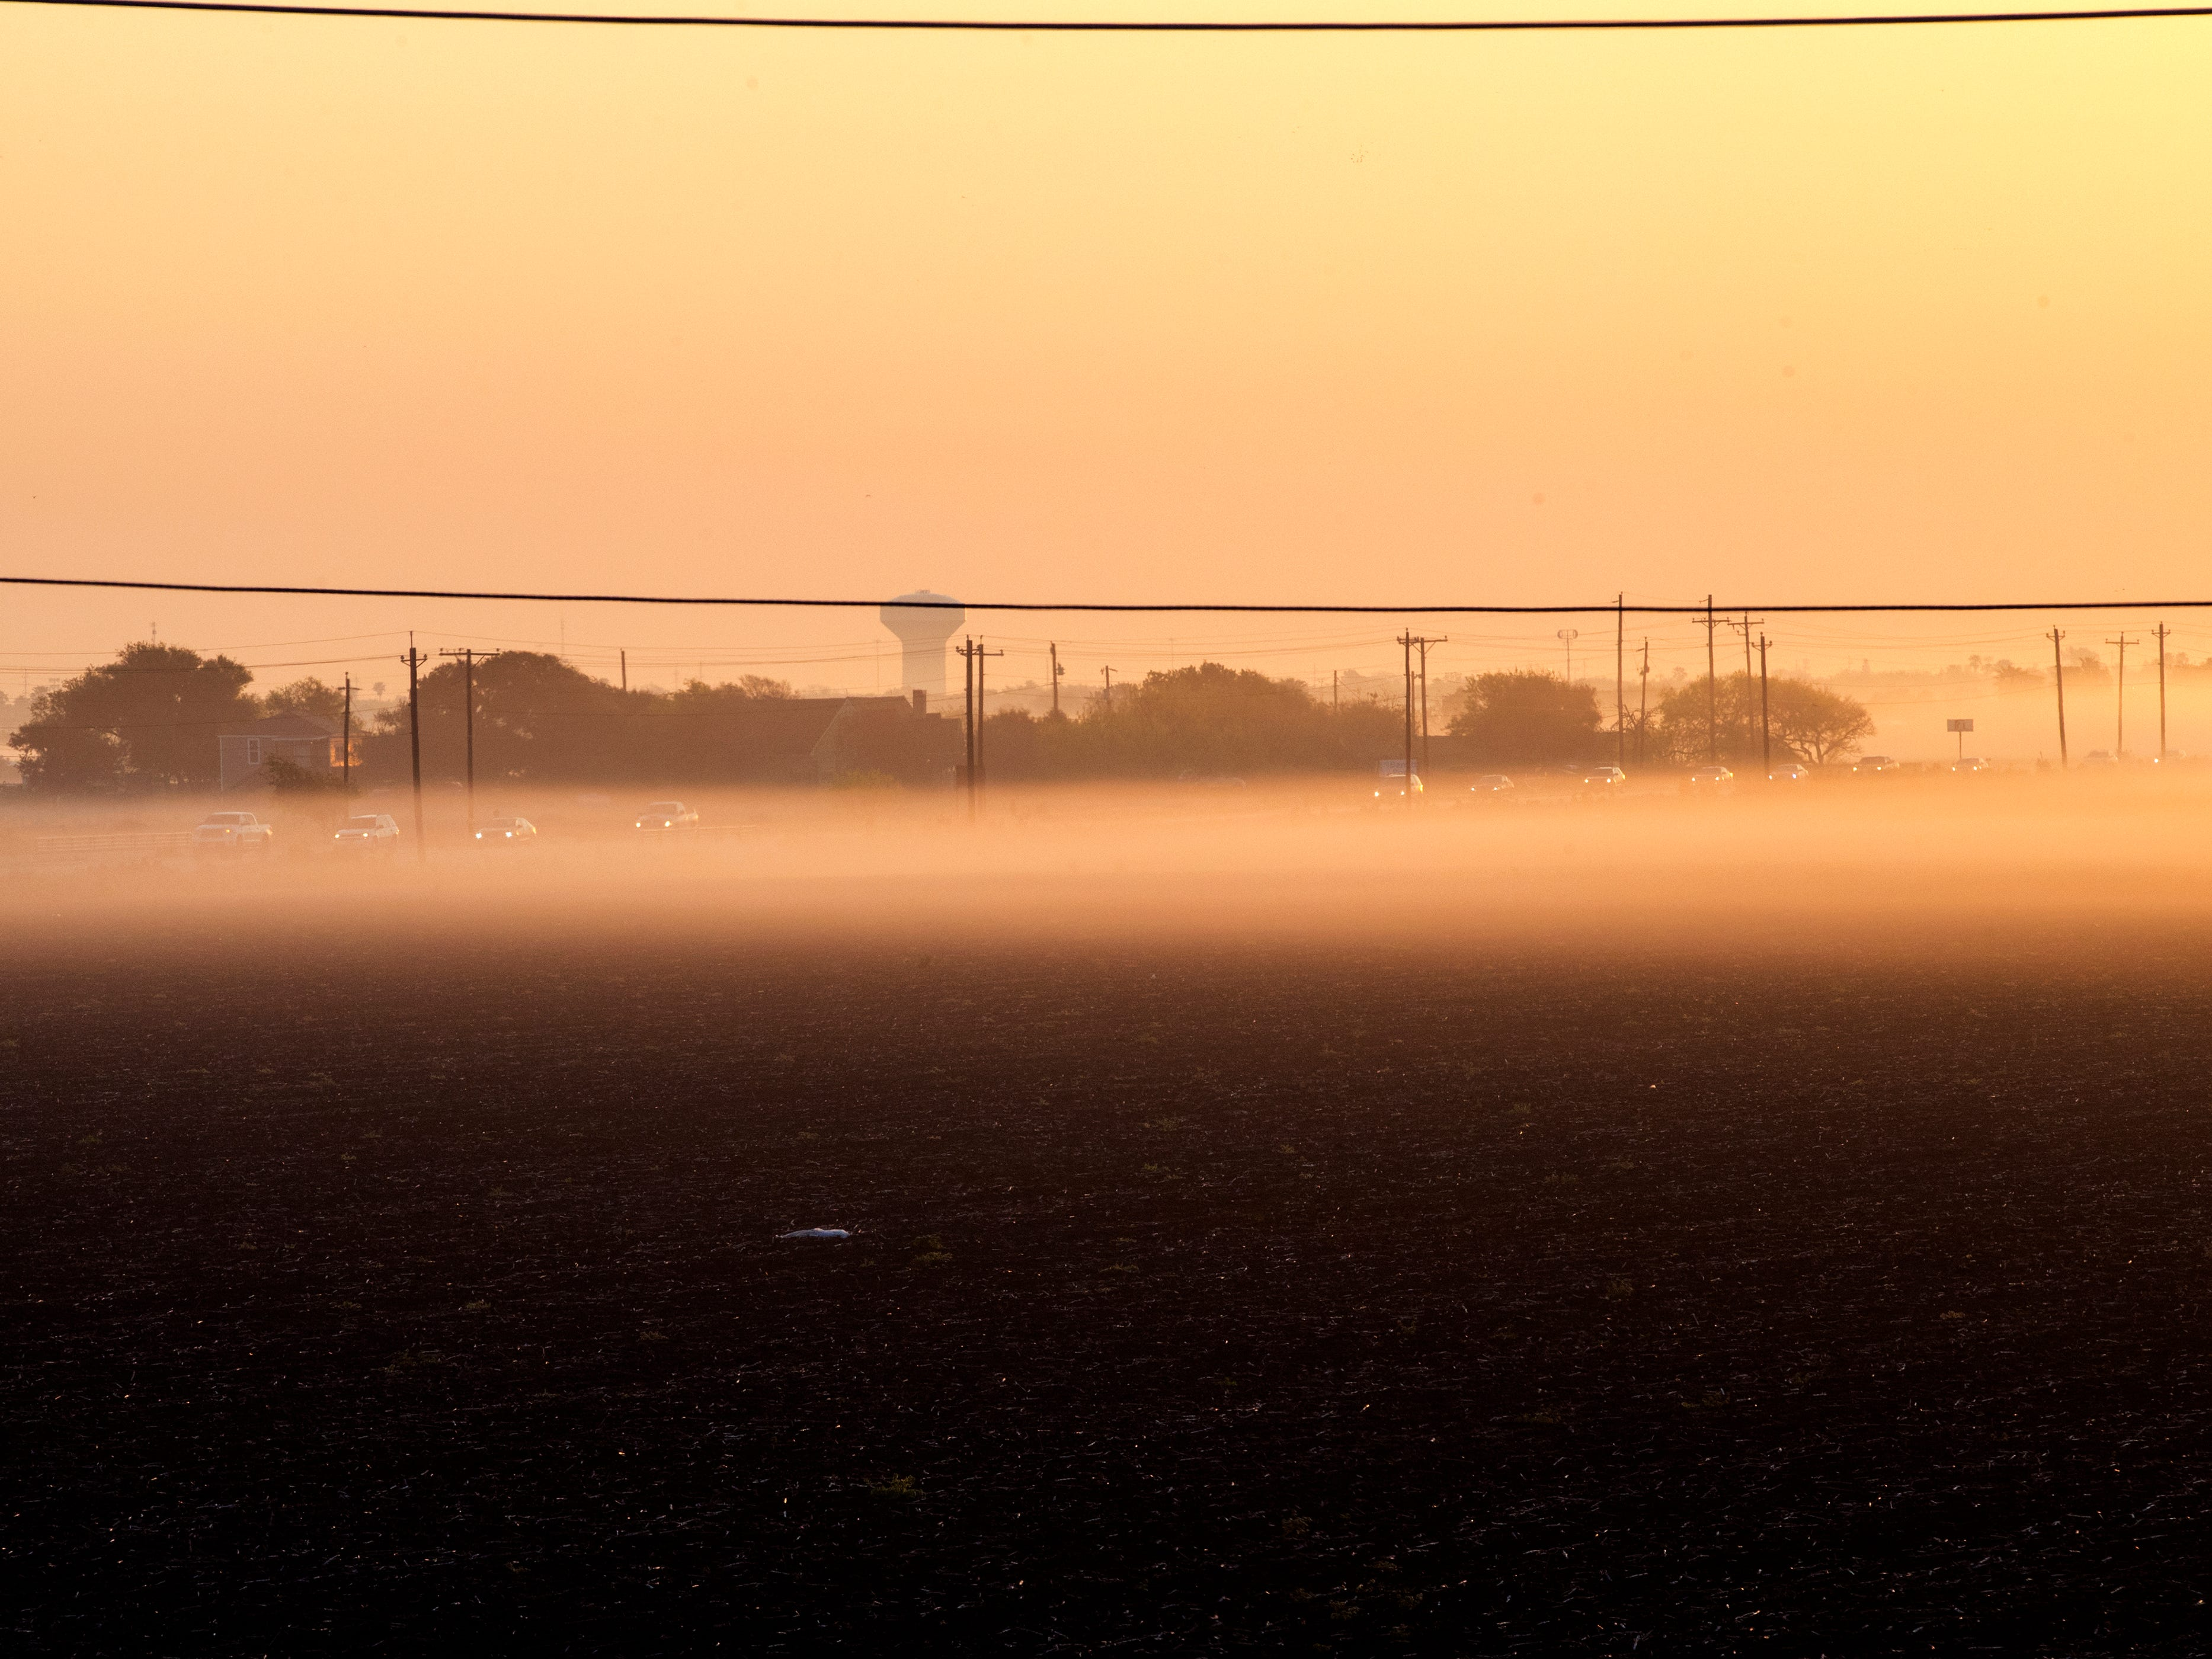 Vehicles travel along Farm Road 43 as fog covers the southside on Thursday, March 21, 2019.